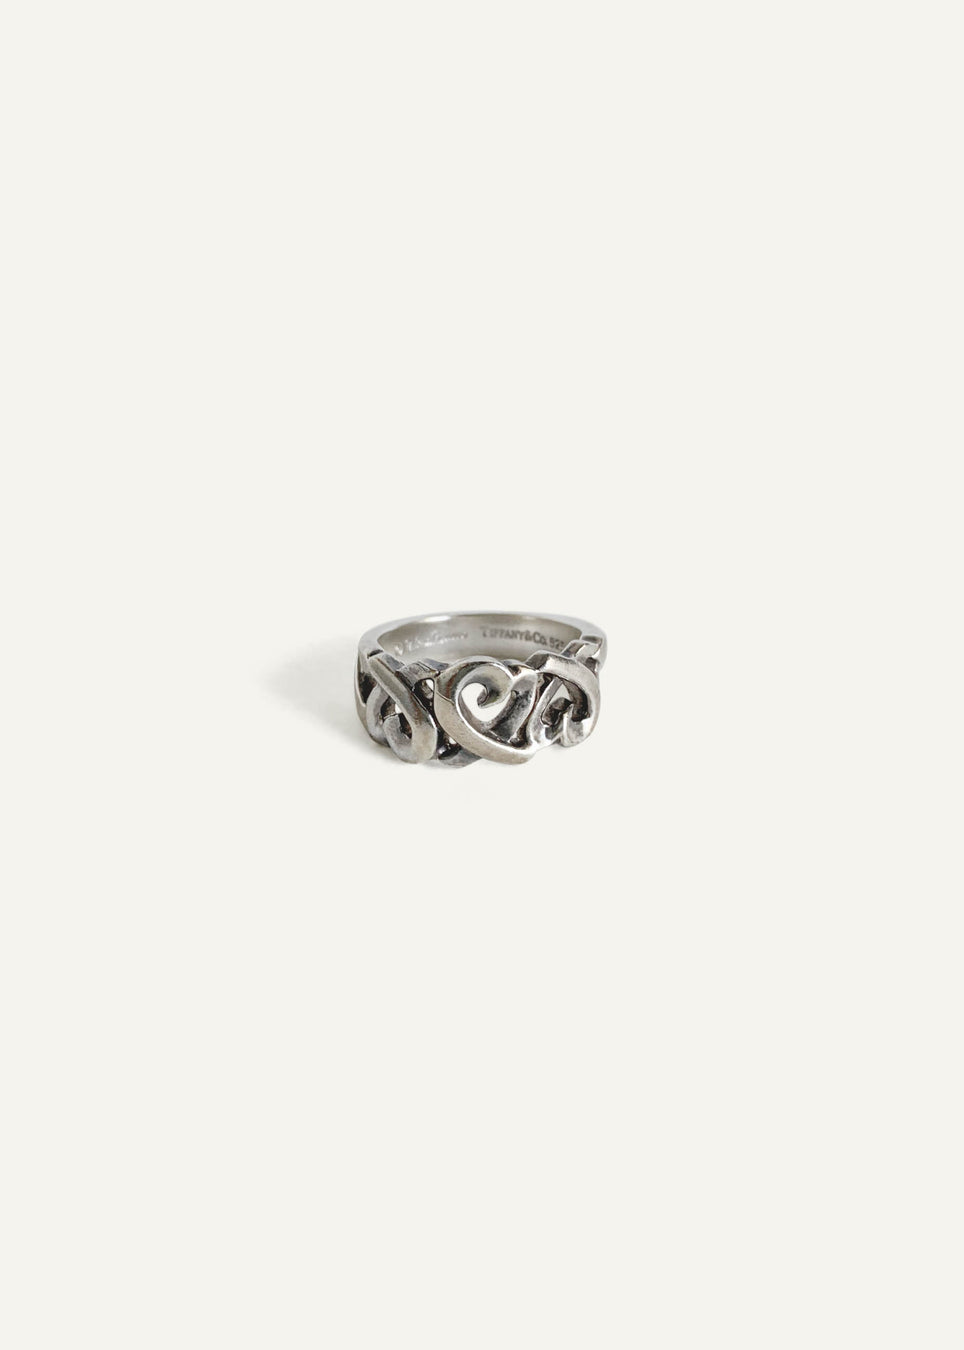 925 Silver Tiffany's Paloma Picasso Ring